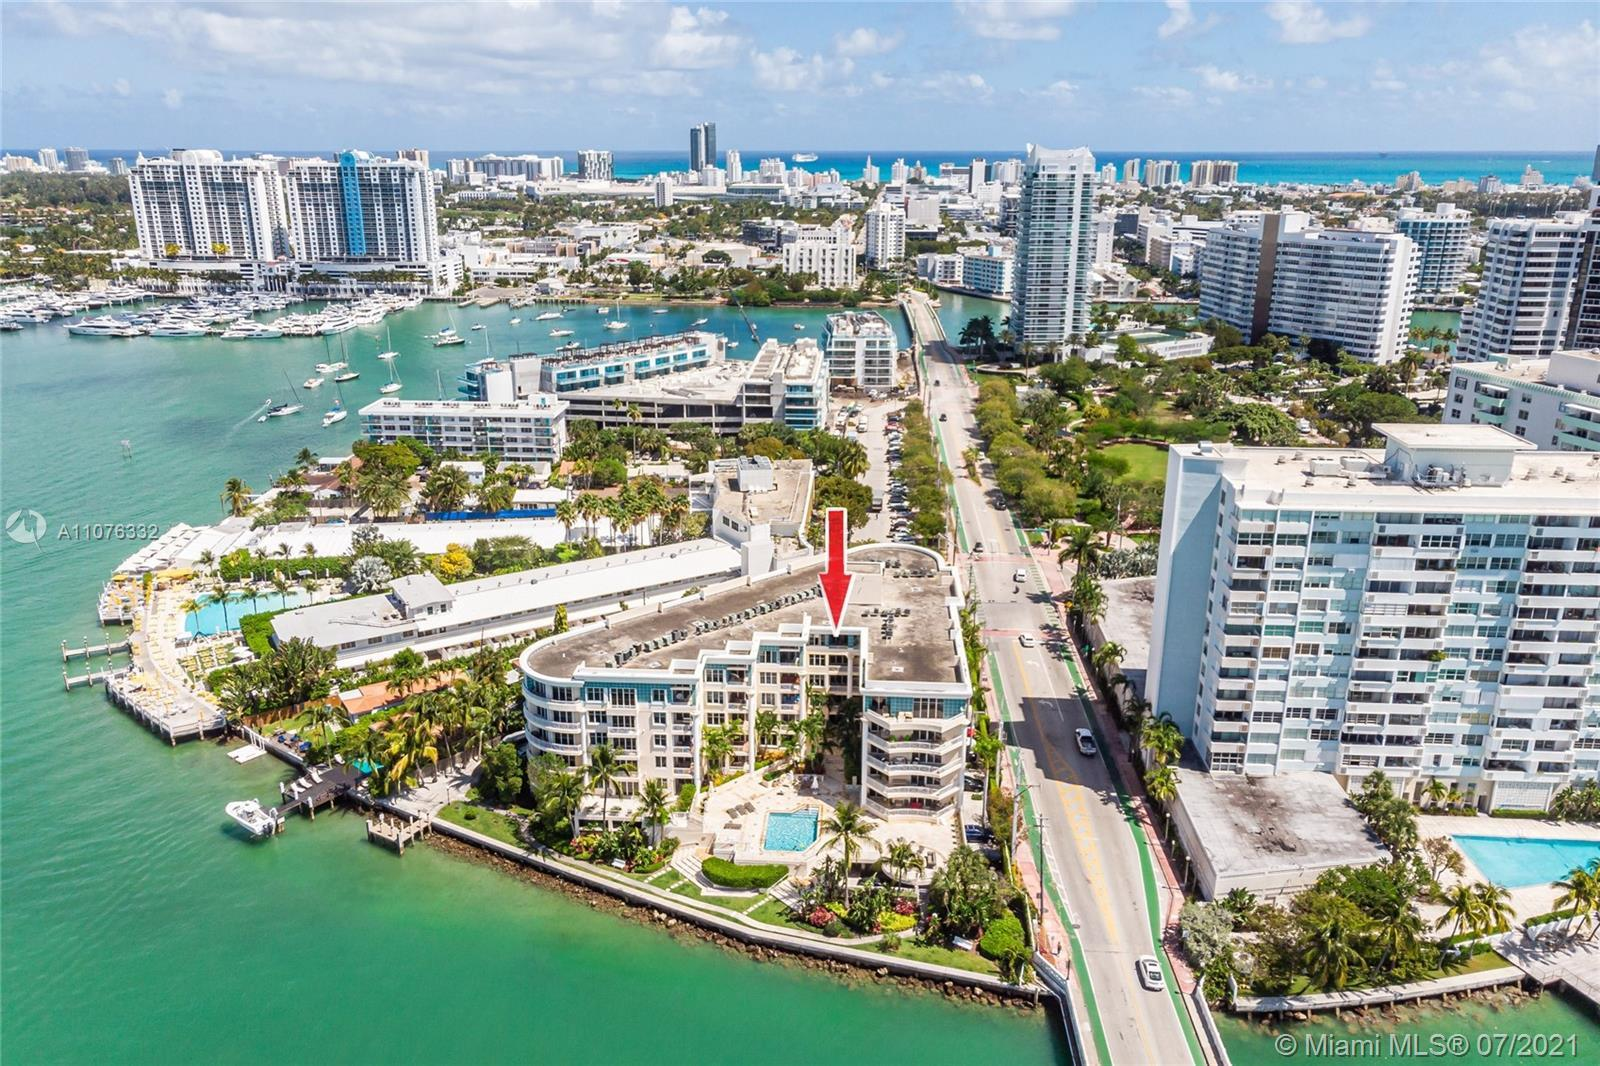 EXTRAORDINARY LOCATION! Wake up on the Belle Isle (Venetian Island) to peaceful bay views. The Vista